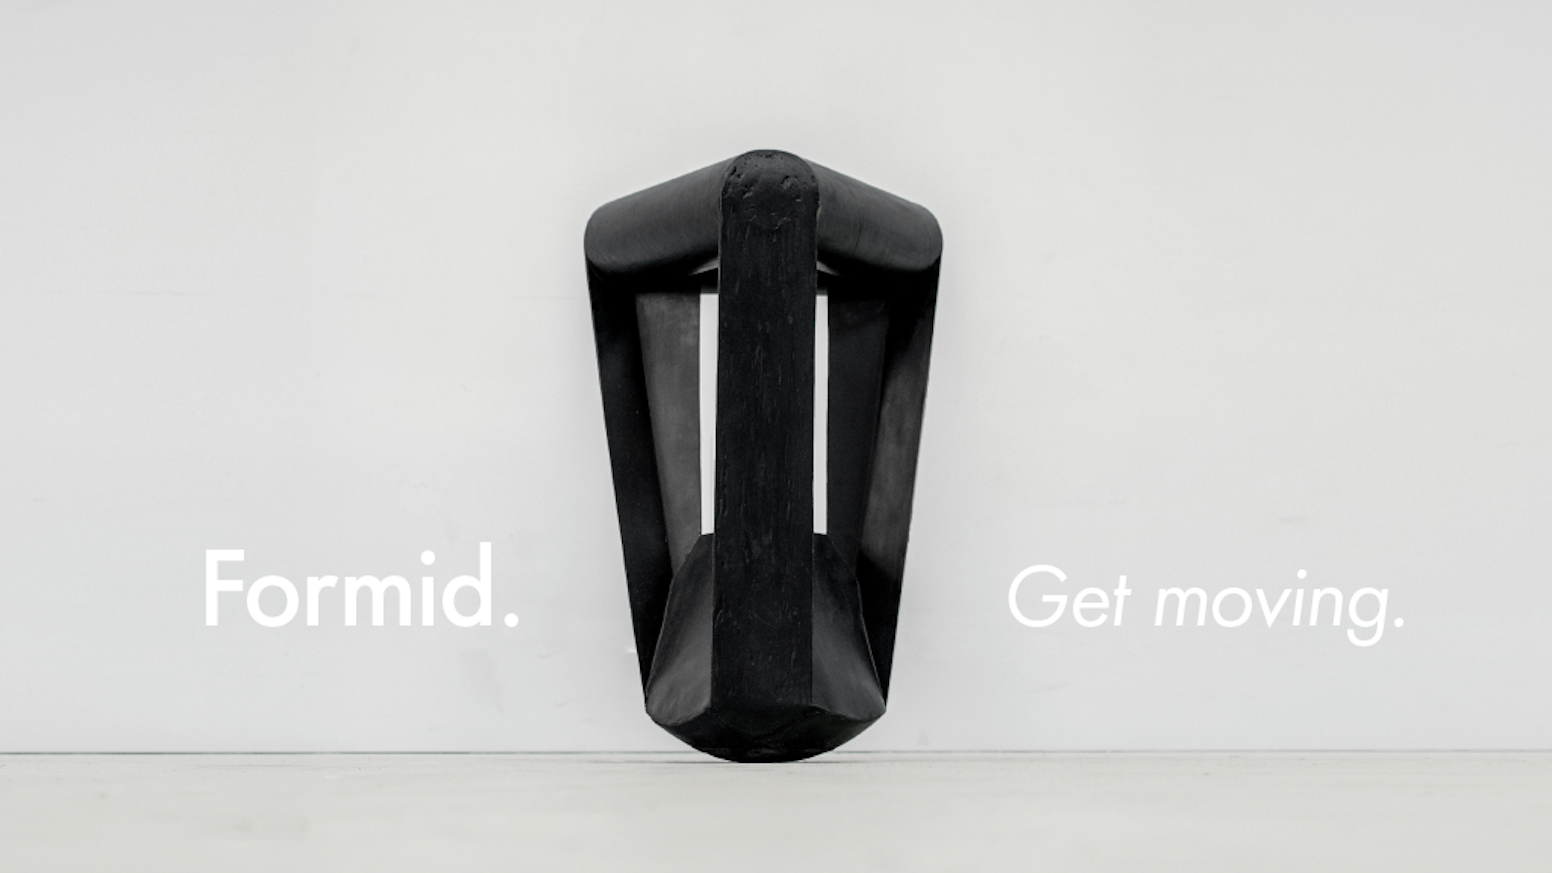 The first made-to-measure active seat with built in haptic feedback and an app.